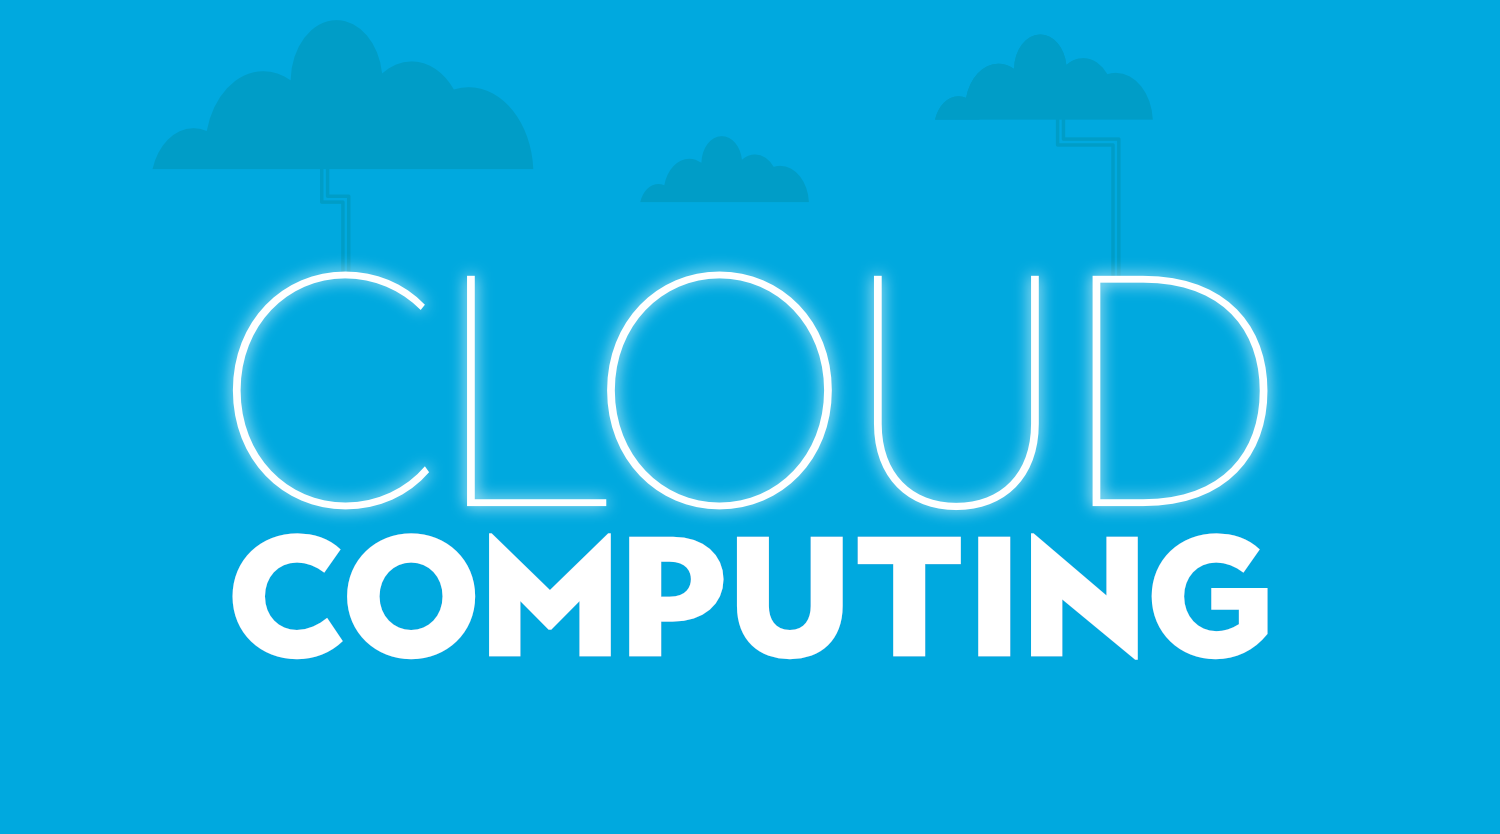 Interesting-Facts-About-Cloud-Computing